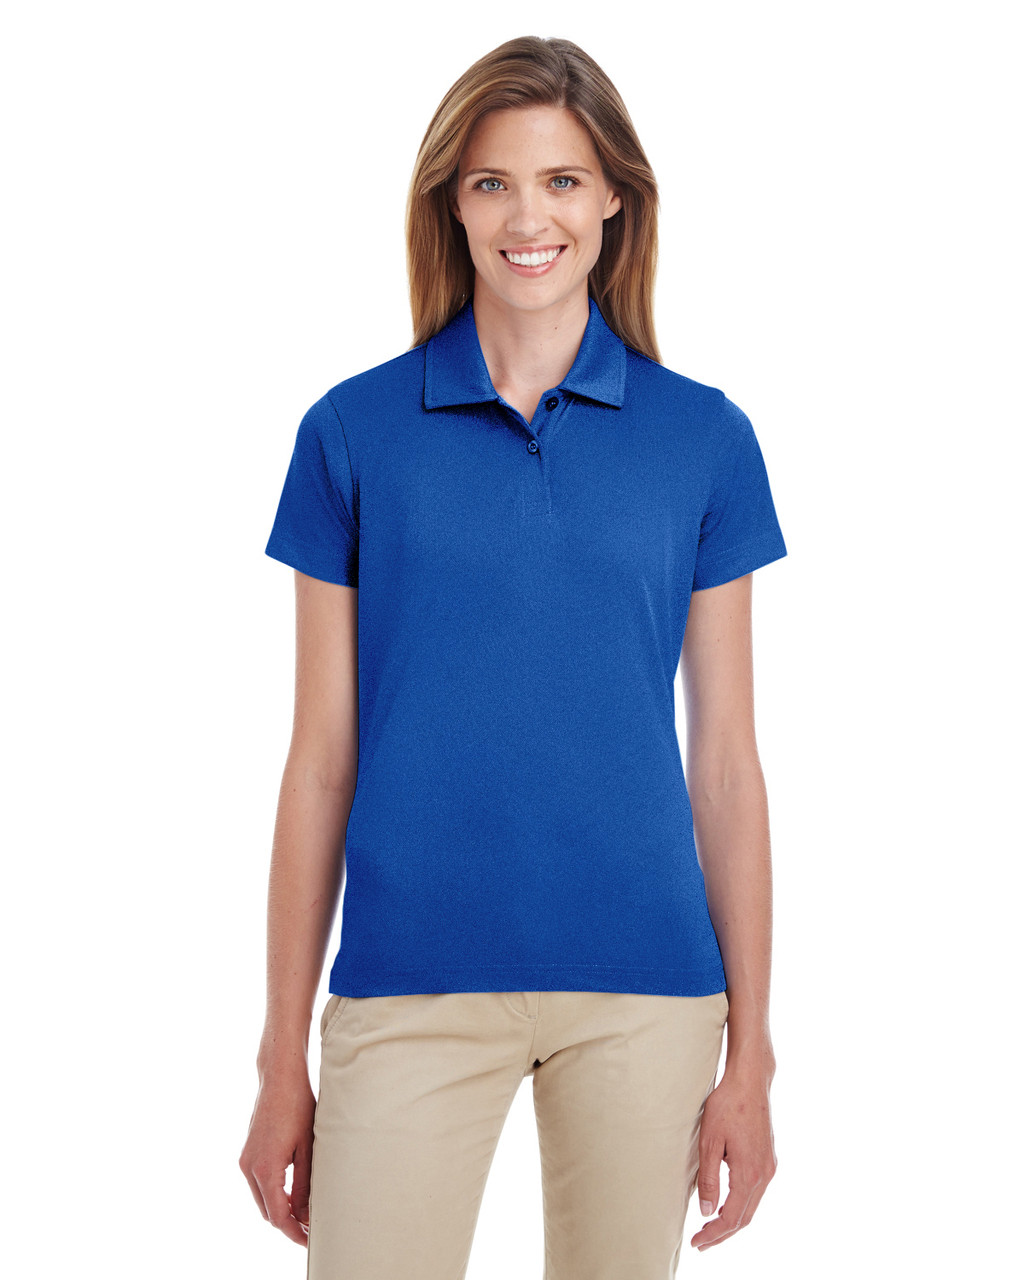 Sport Royal - TT21W Team 365 Ladies' Command Snag Protection Polo Shirt